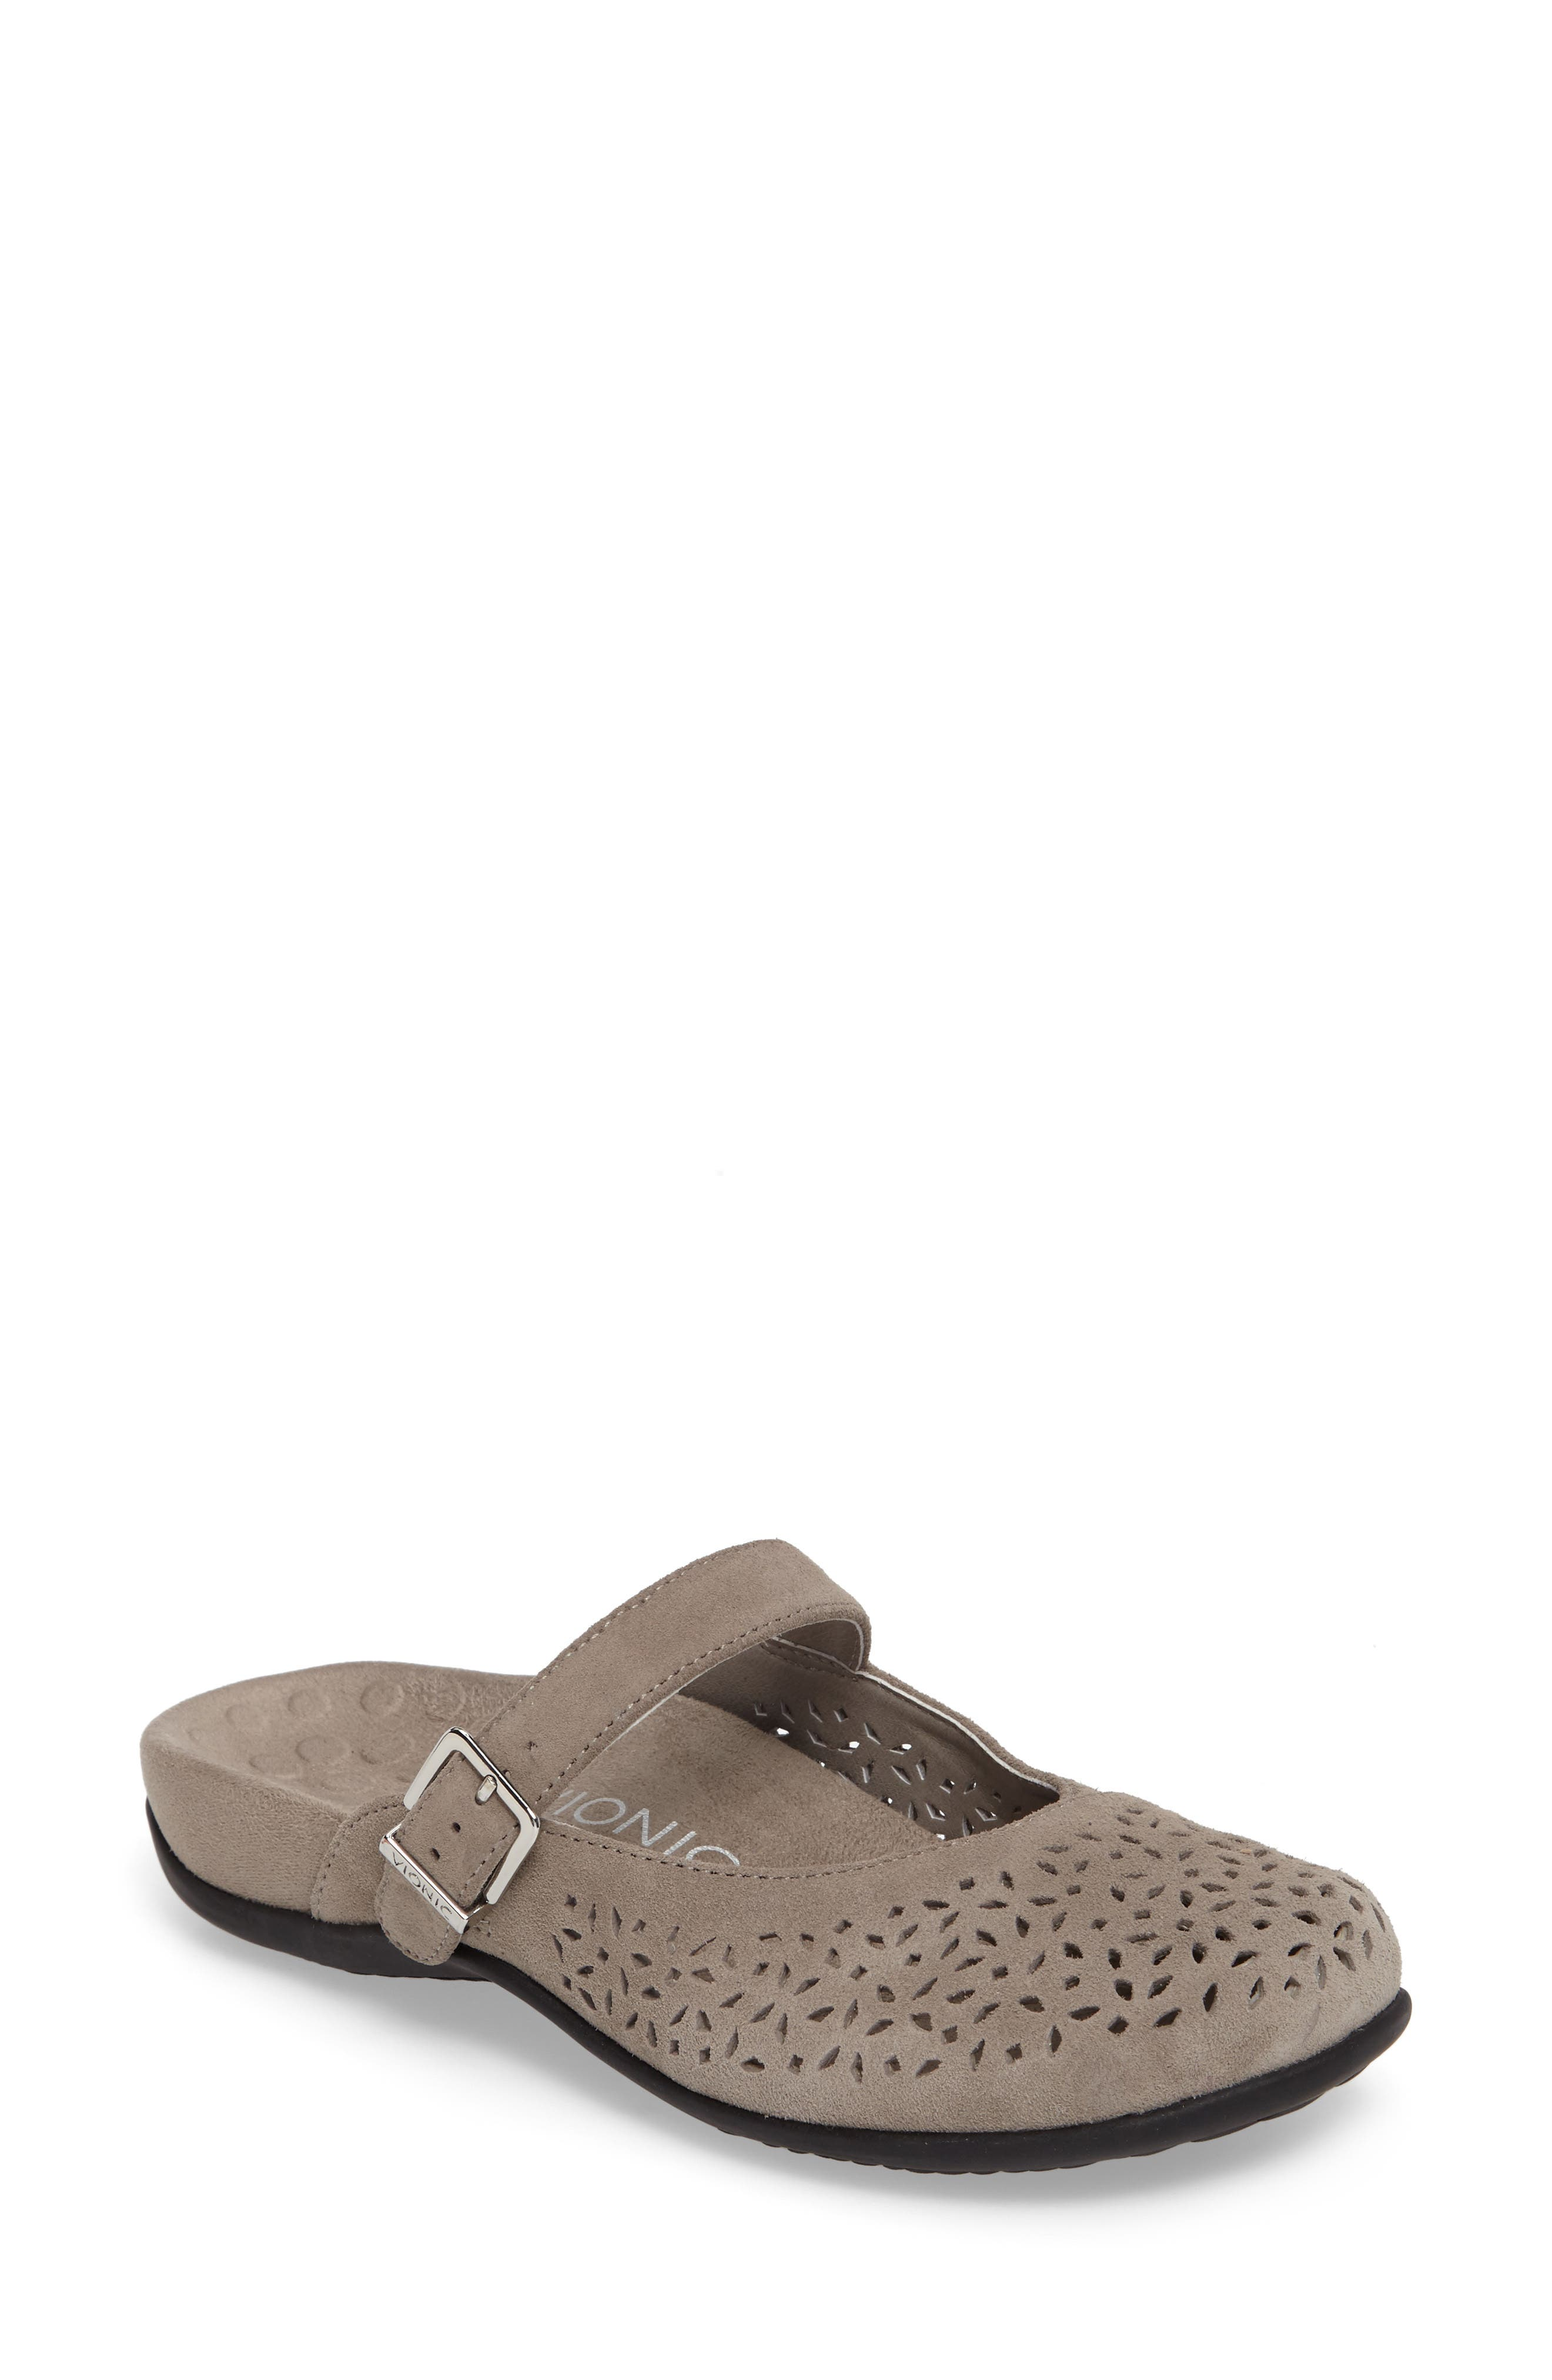 Vionic Women's Rest Lidia Perforated Mary Jane Mule rEKG8